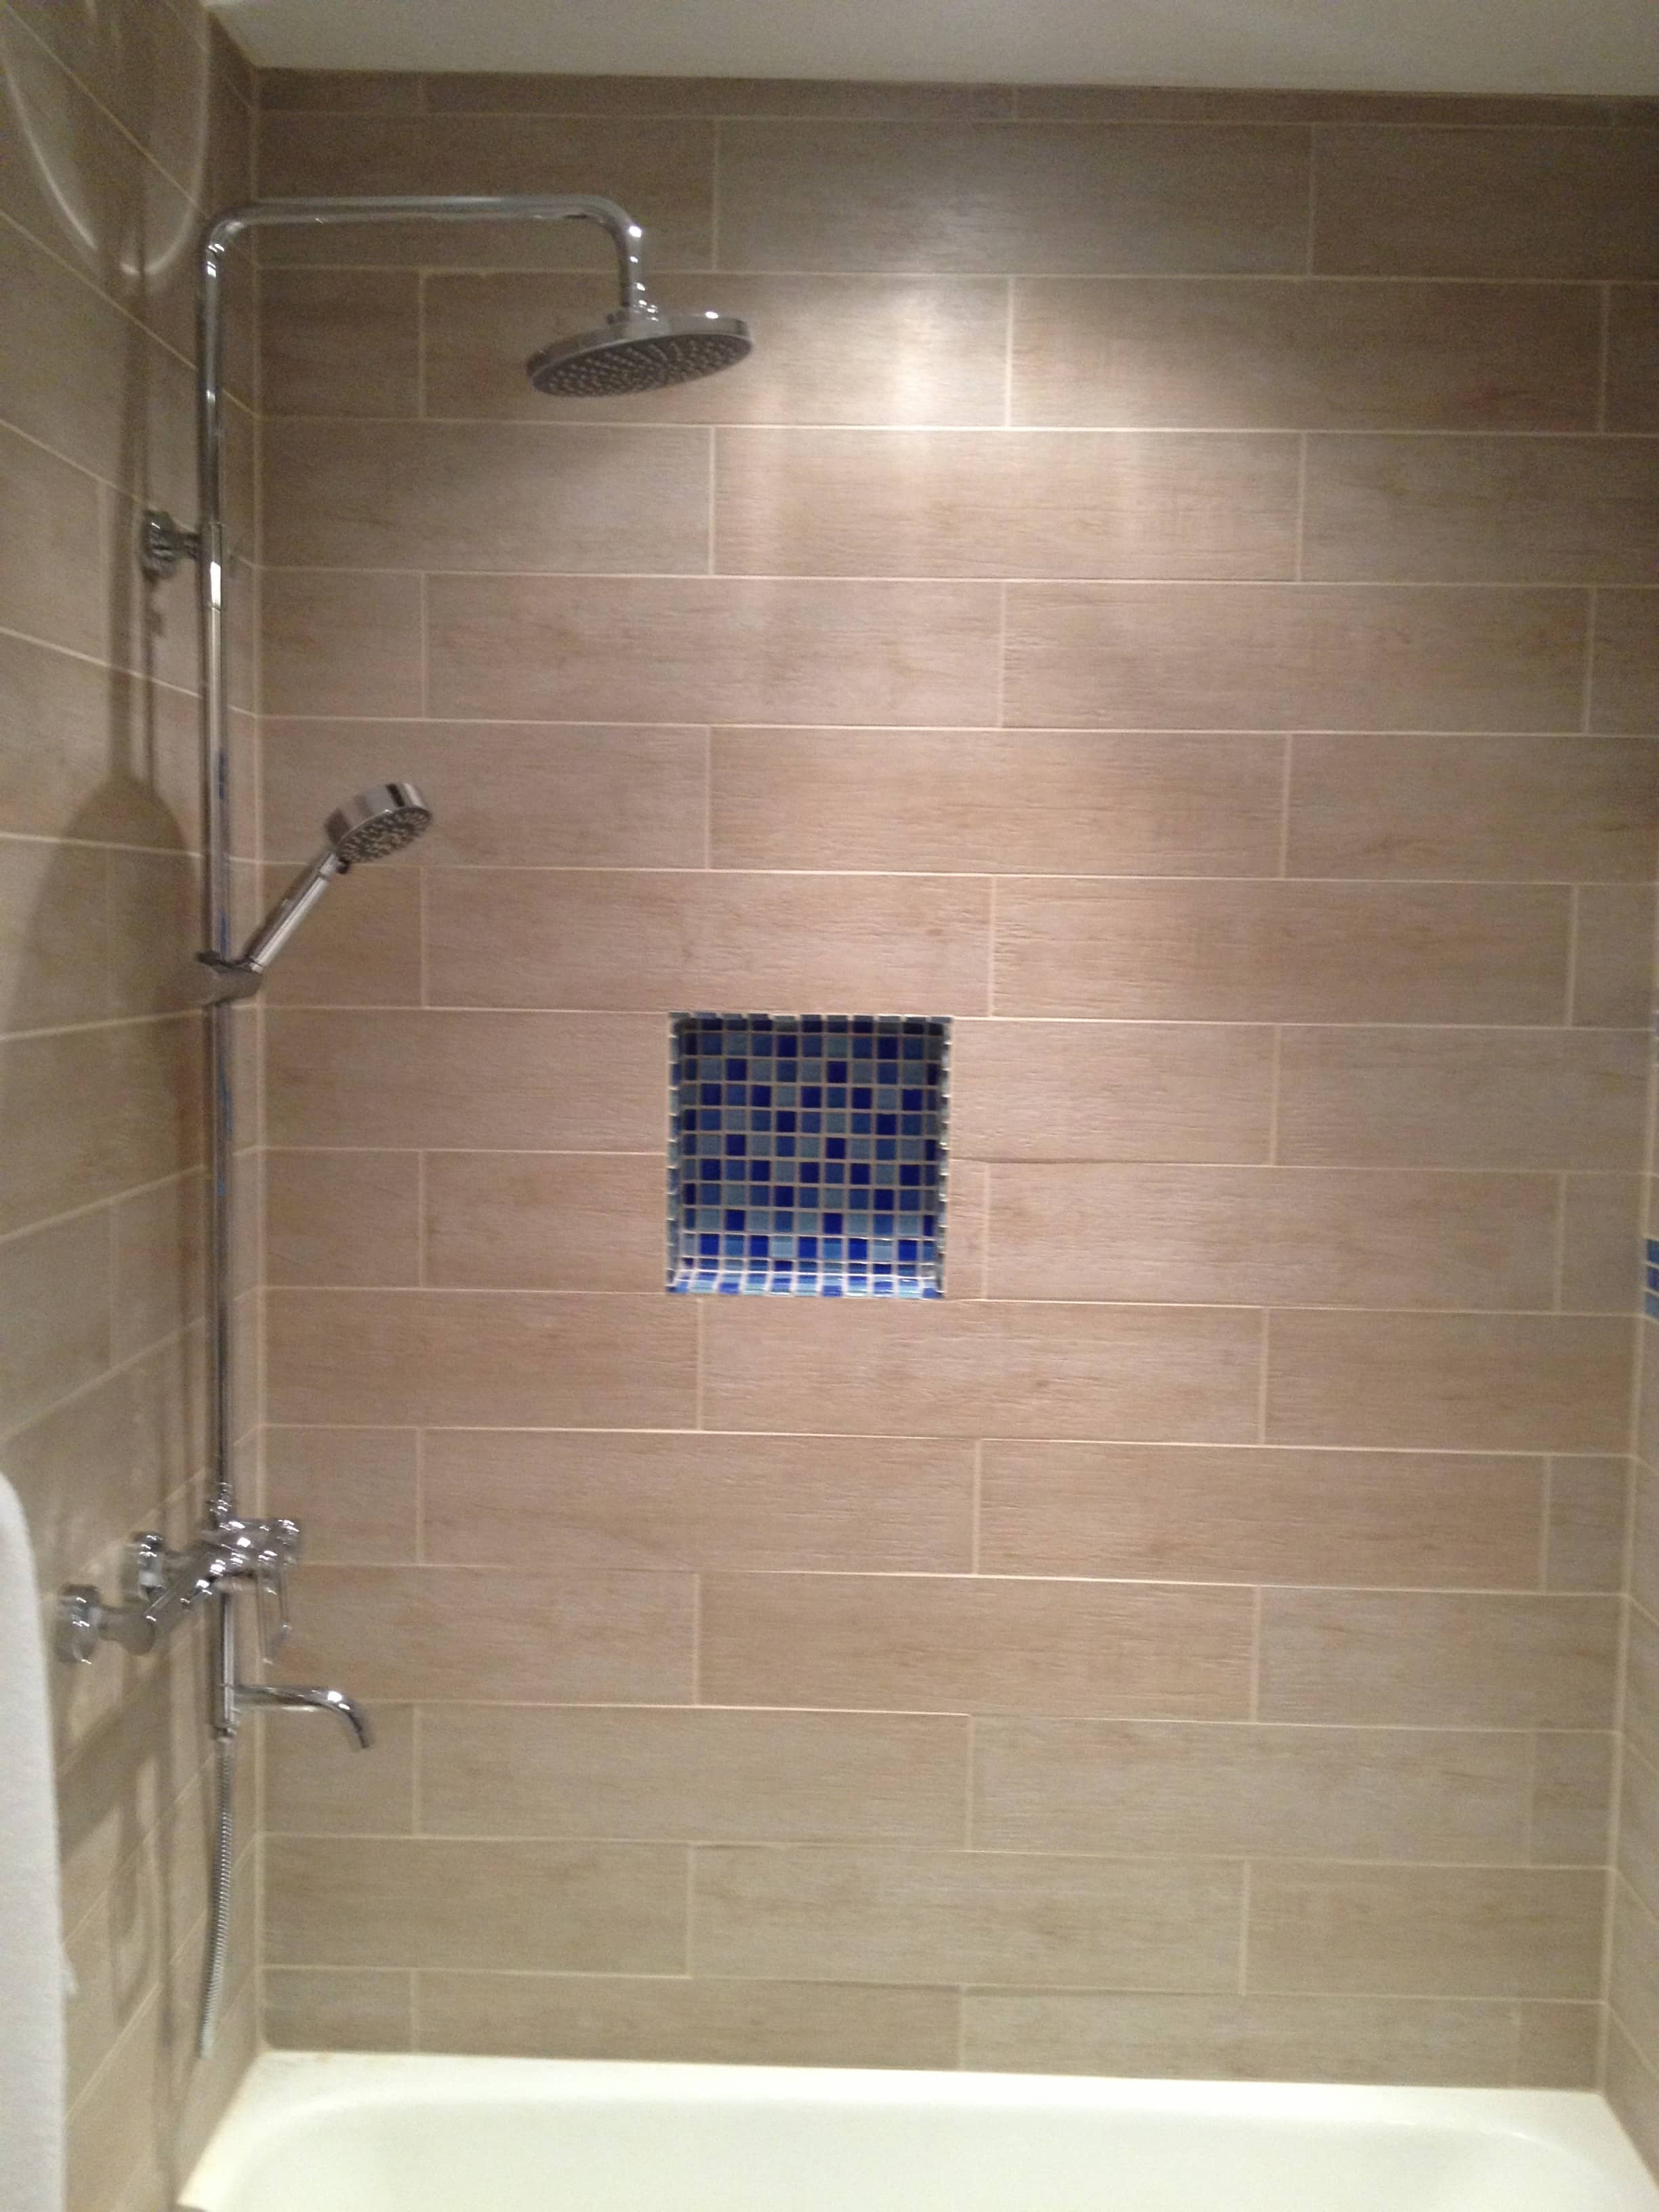 subway grout bathroom grey white cabinets dark tile wood pin look shower